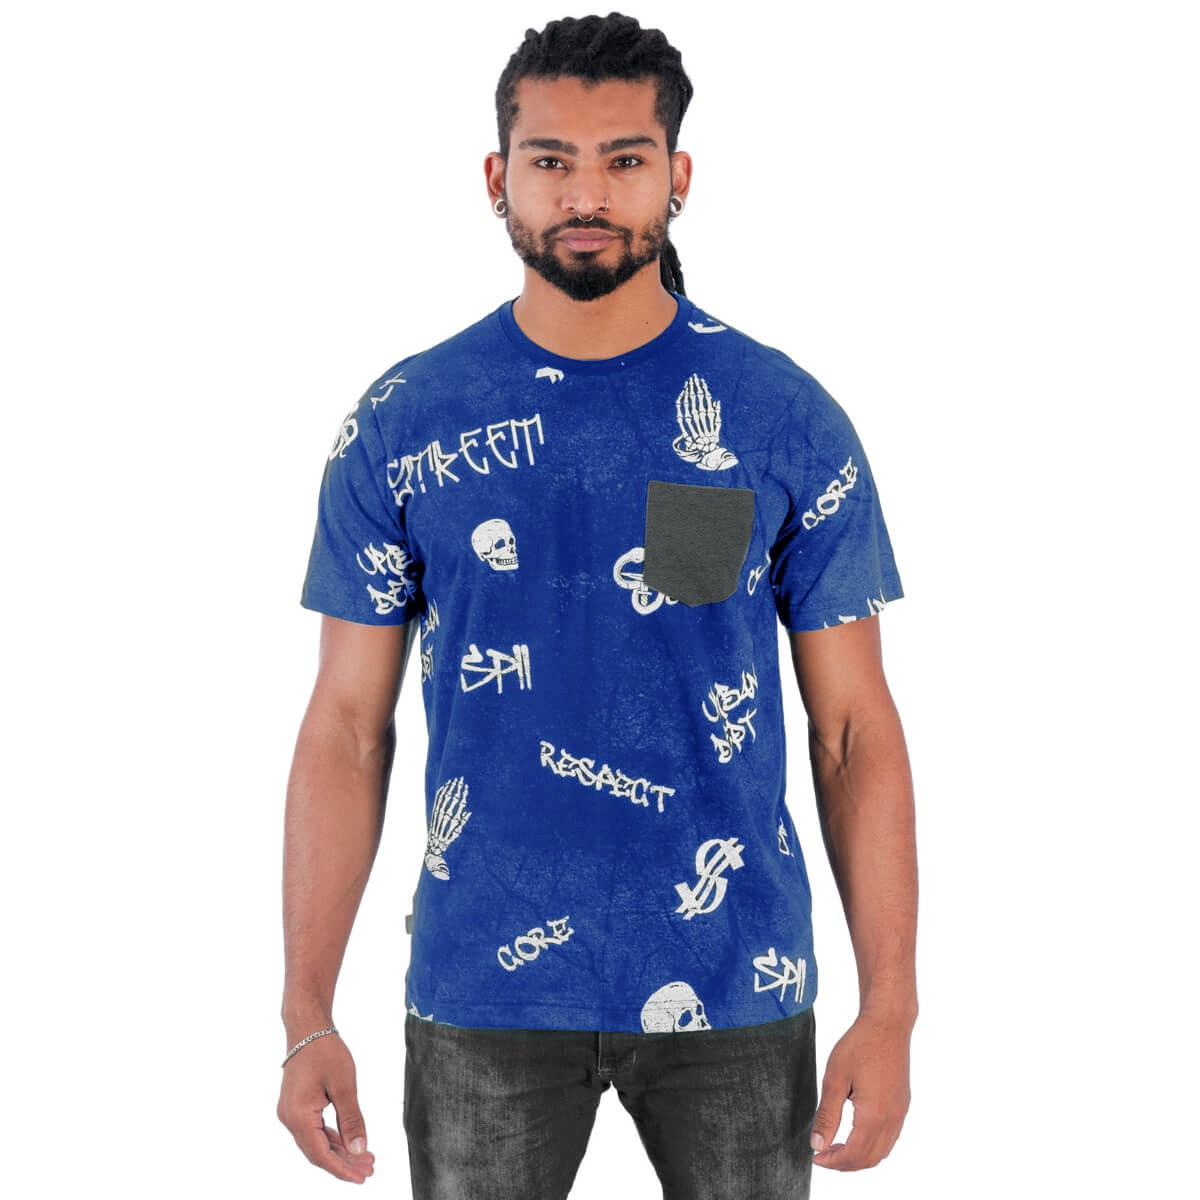 Camiseta Masculina Estampada Respect